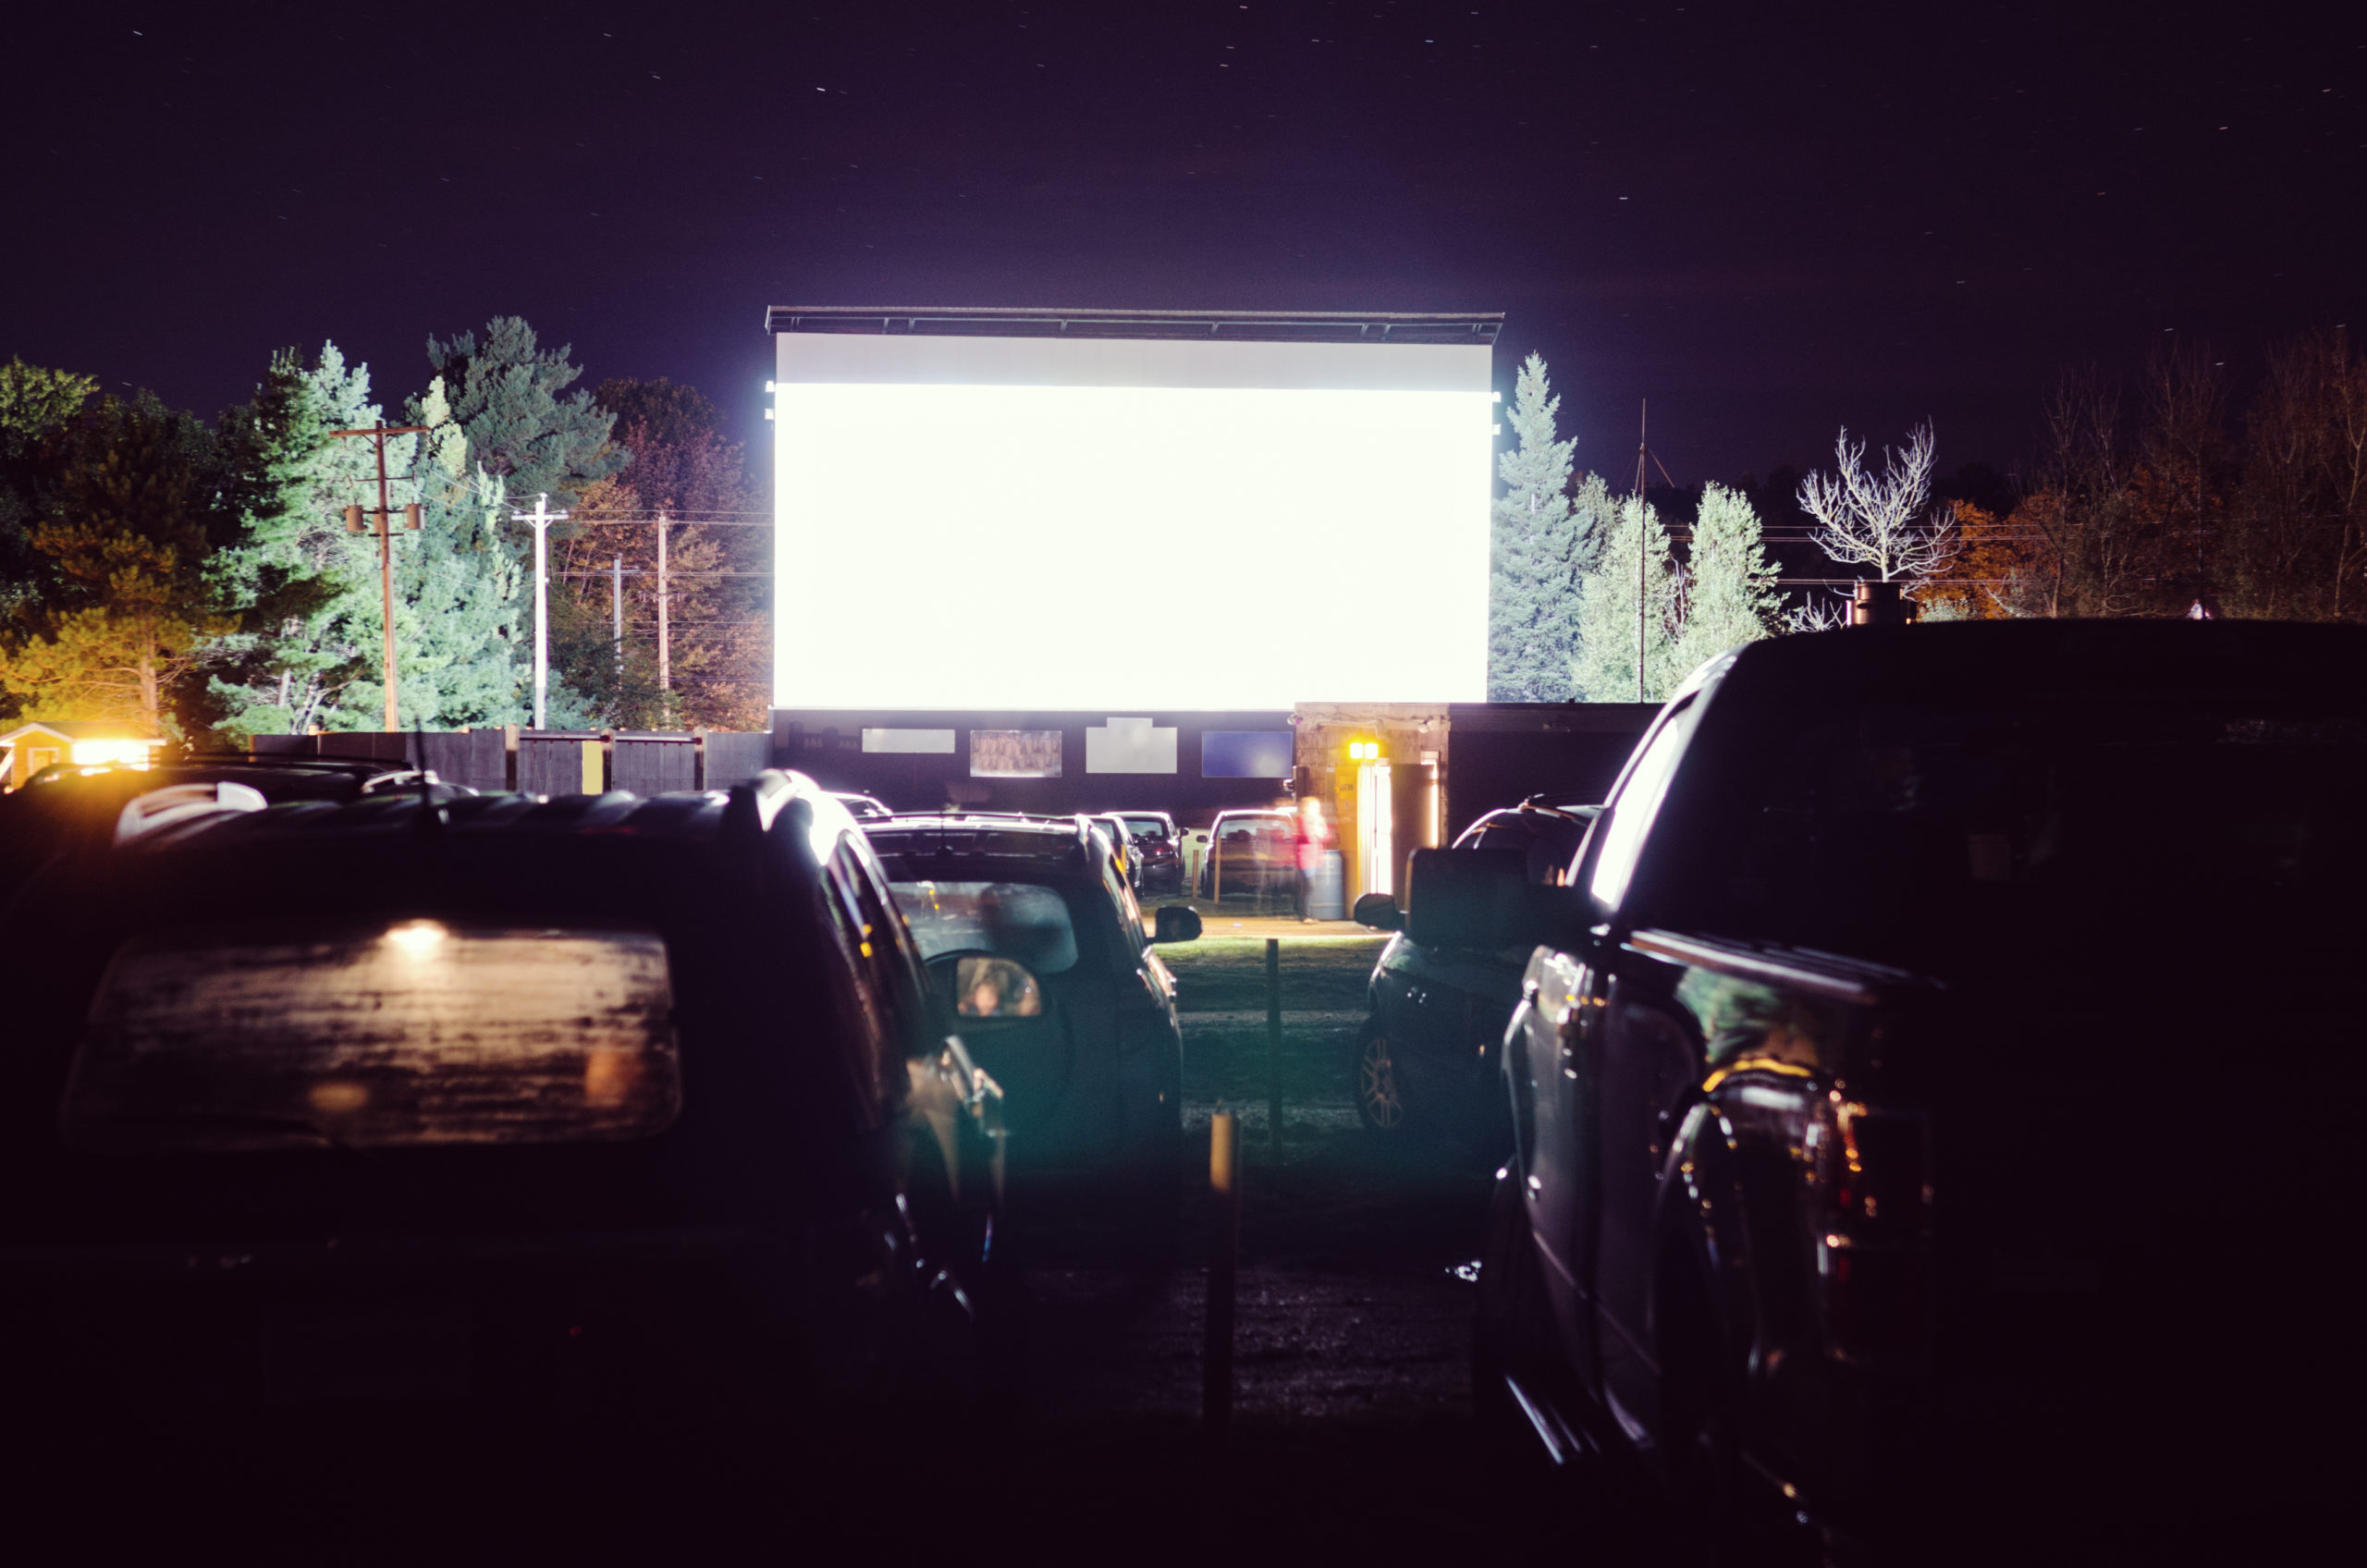 cars at the drive-in theater near Kingstowne